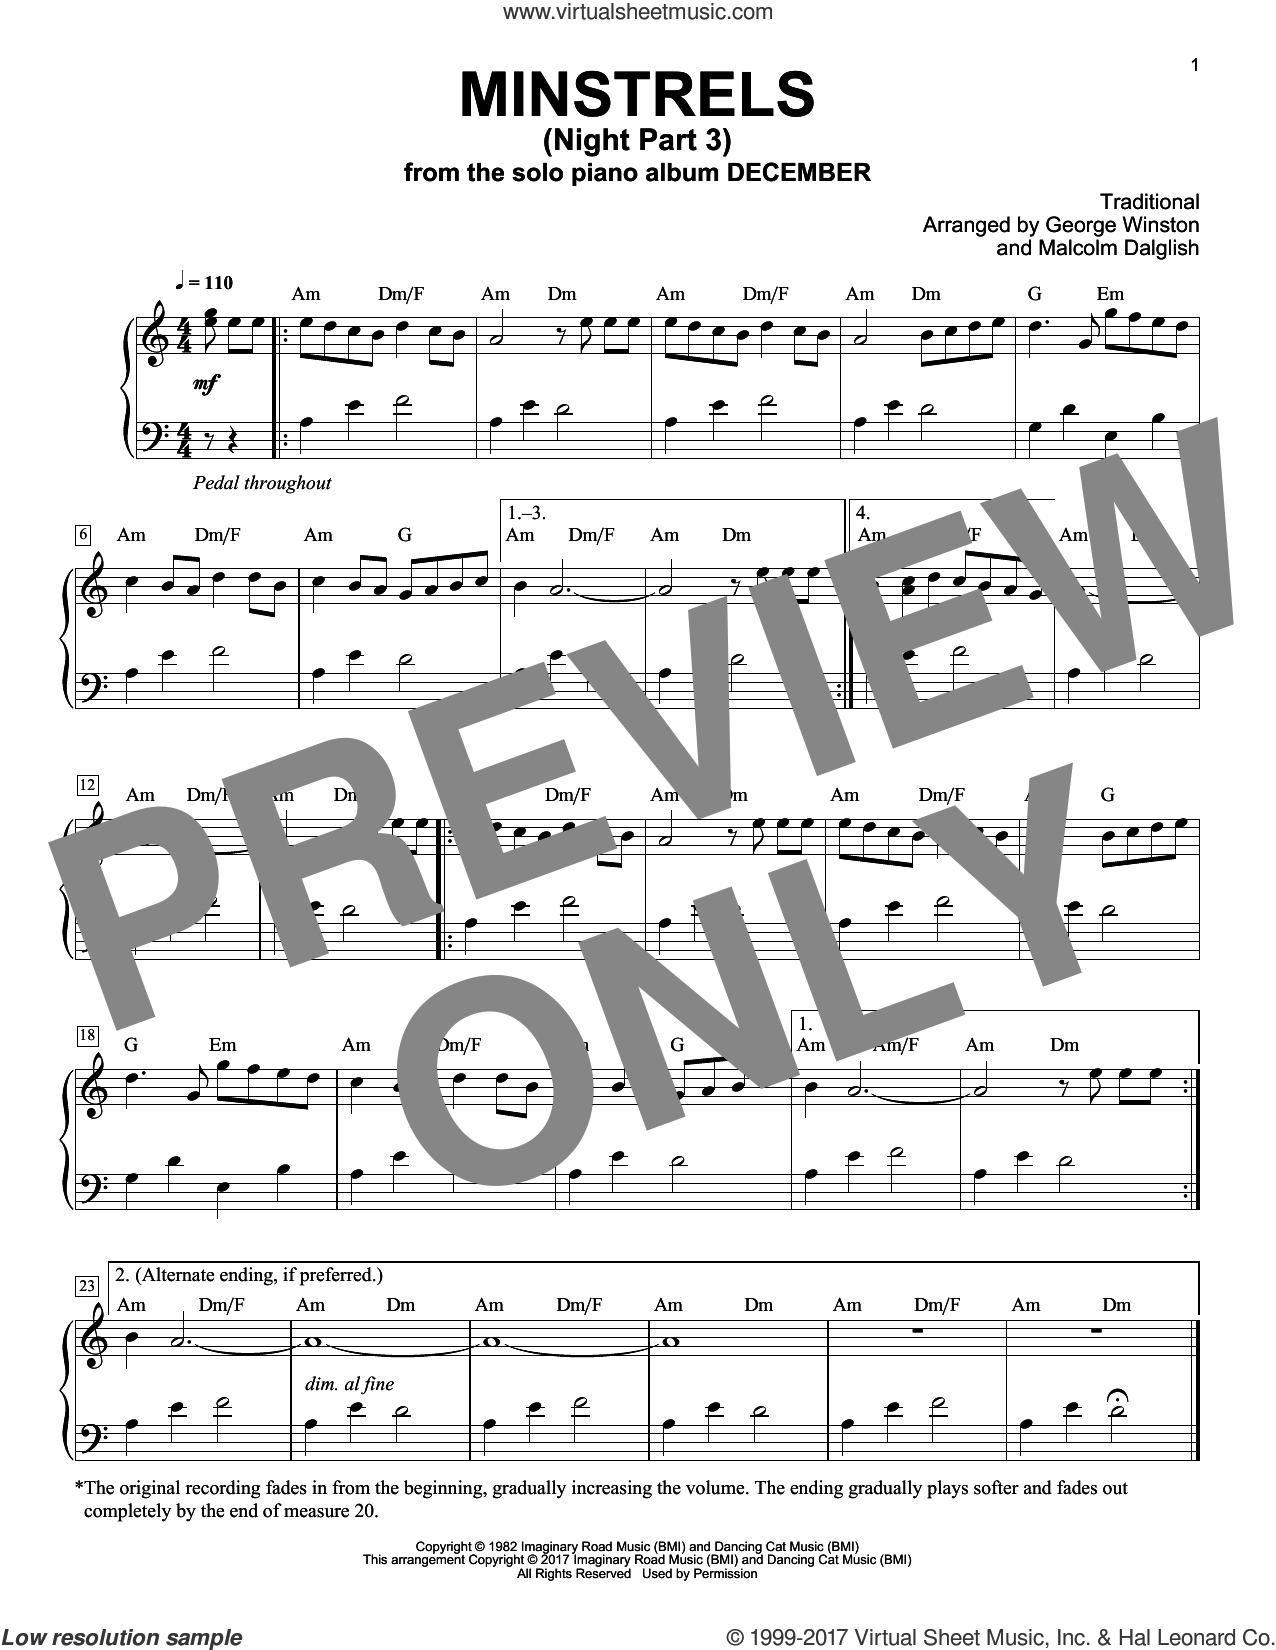 Minstrels (Night Part 3) sheet music for piano solo by George Winston and Malcolm Dalglish, intermediate skill level